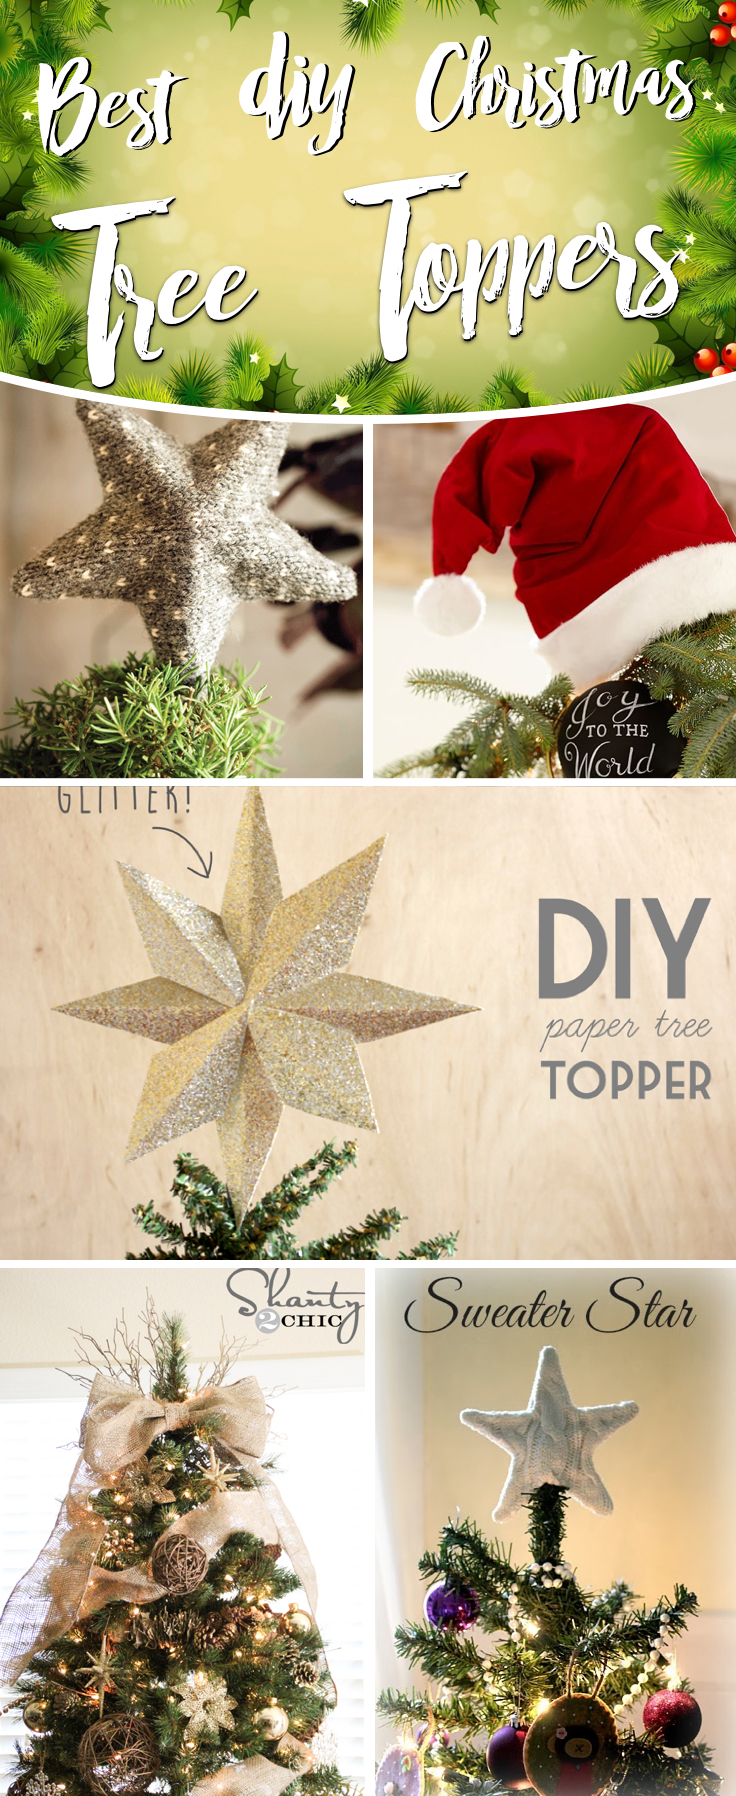 25 Ideas On Christmas Tree Toppers That Can Reinvigorate Your Festivities